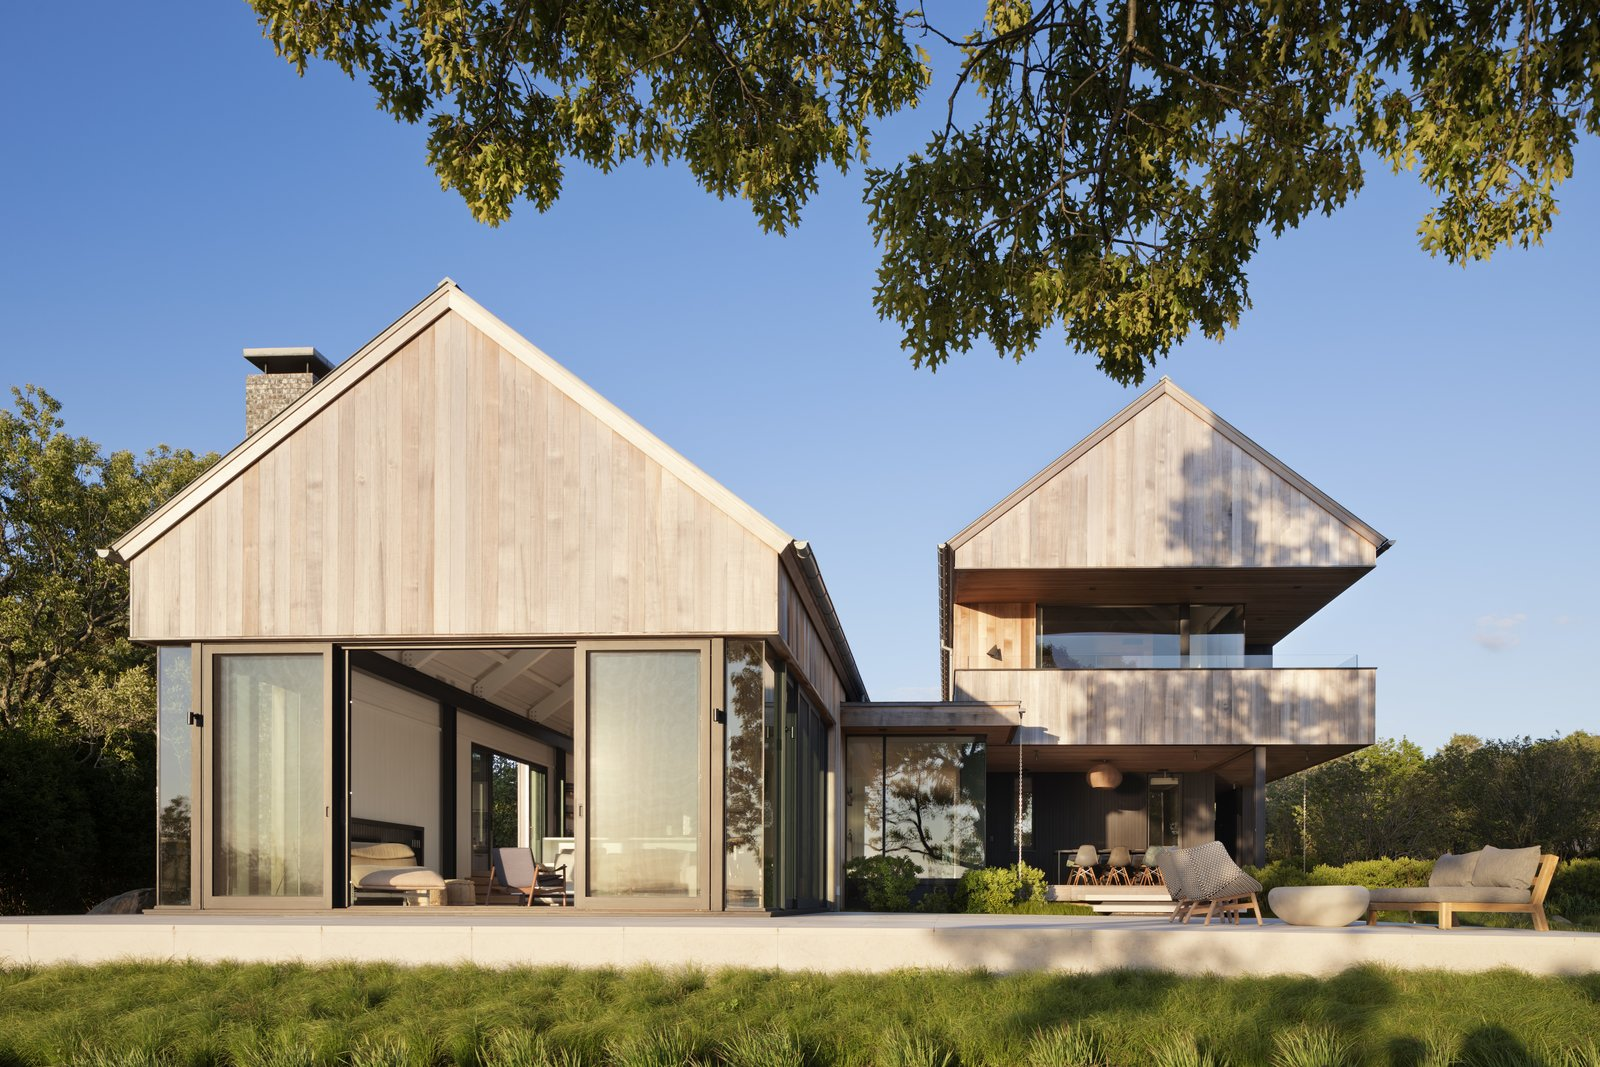 Exterior, Wood Siding Material, House Building Type, Beach House Building Type, Gable RoofLine, and Metal Roof Material East Lake House, designed by Robert Young Architects, features two structures to capture sunshine and breezes from all angles.  Best Photos from Two Cedar-Clad Structures Form a Unique Montauk Retreat